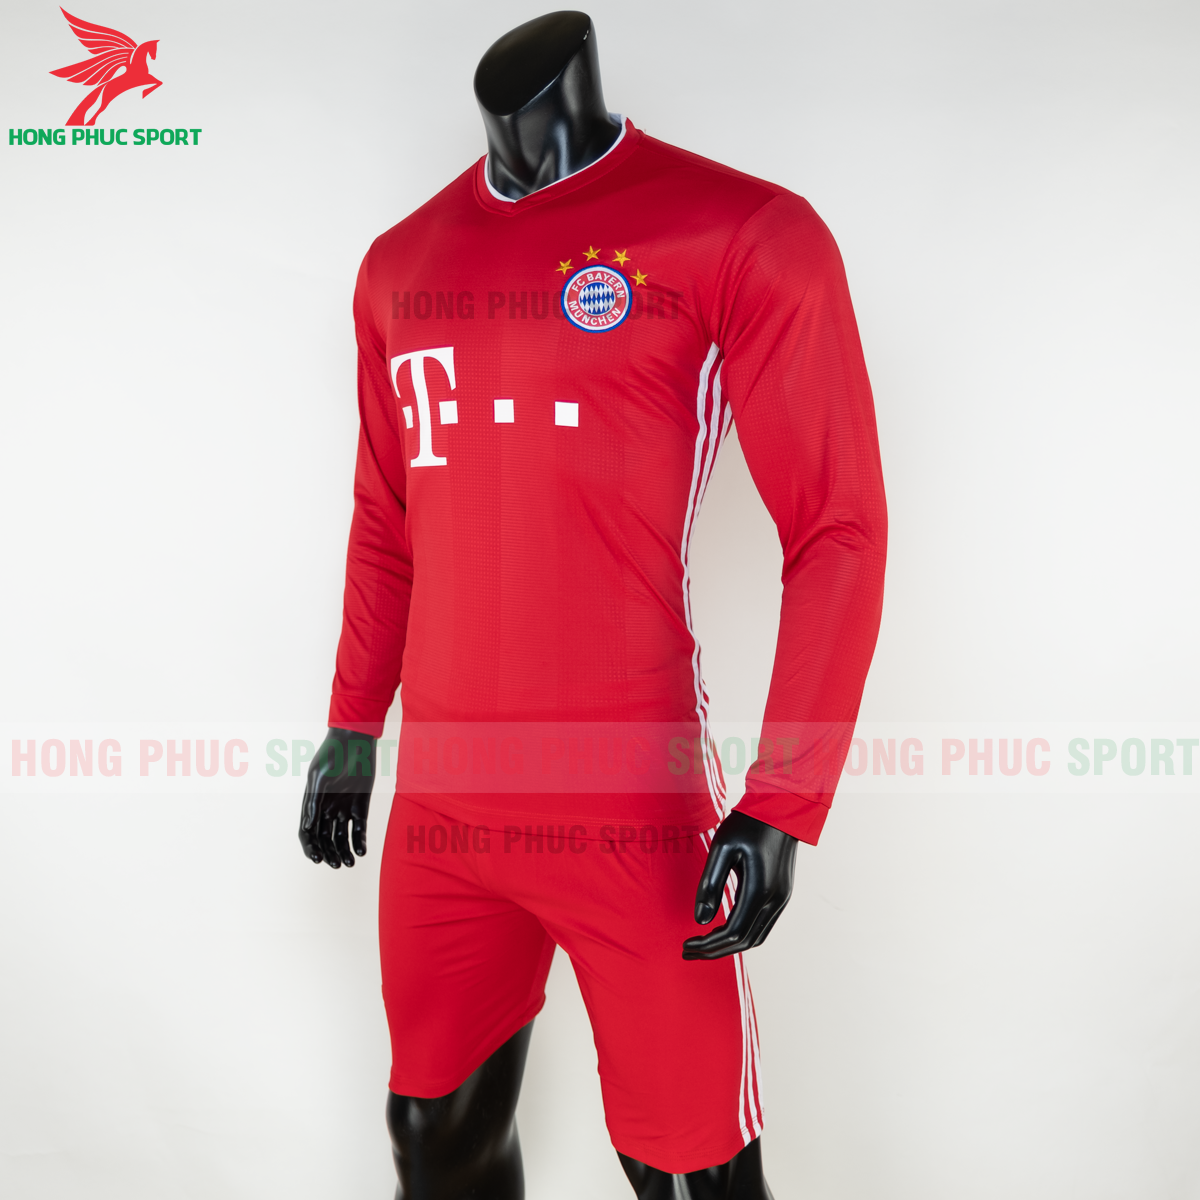 https://cdn.hongphucsport.com/unsafe/s4.shopbay.vn/files/285/ao-dai-tay-bayern-munich-2020-san-nha-4-5f8fb9ffc1470.png